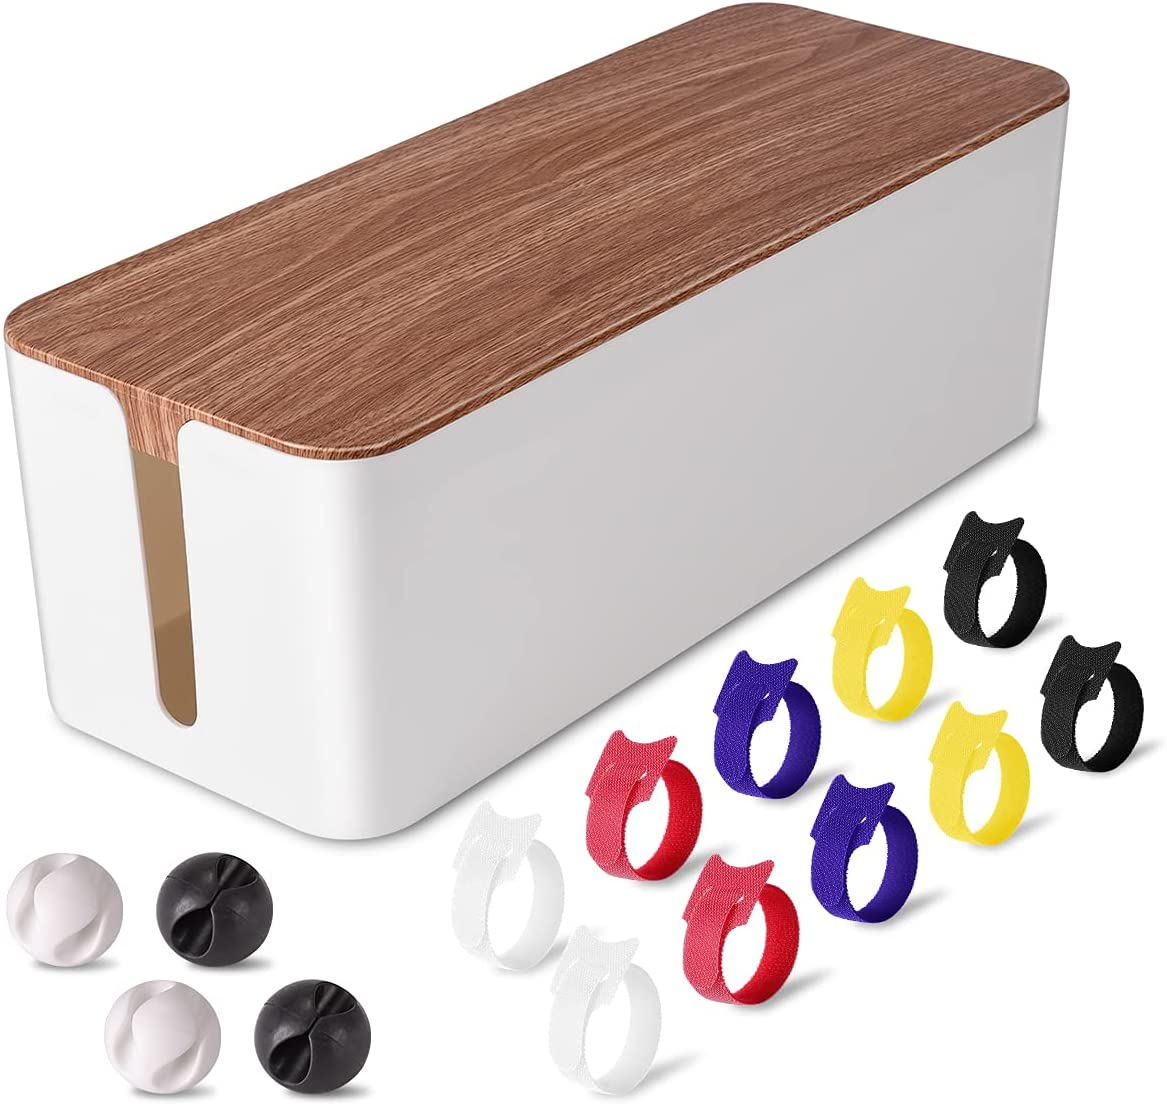 Cable Management Box Large - Wooden Grain Cable Organizer Box to Hide Wires&Power Strips,TV&Desk Computer Wires,with Cable Clips&Reusable Cable Ties for Home&Office(White)